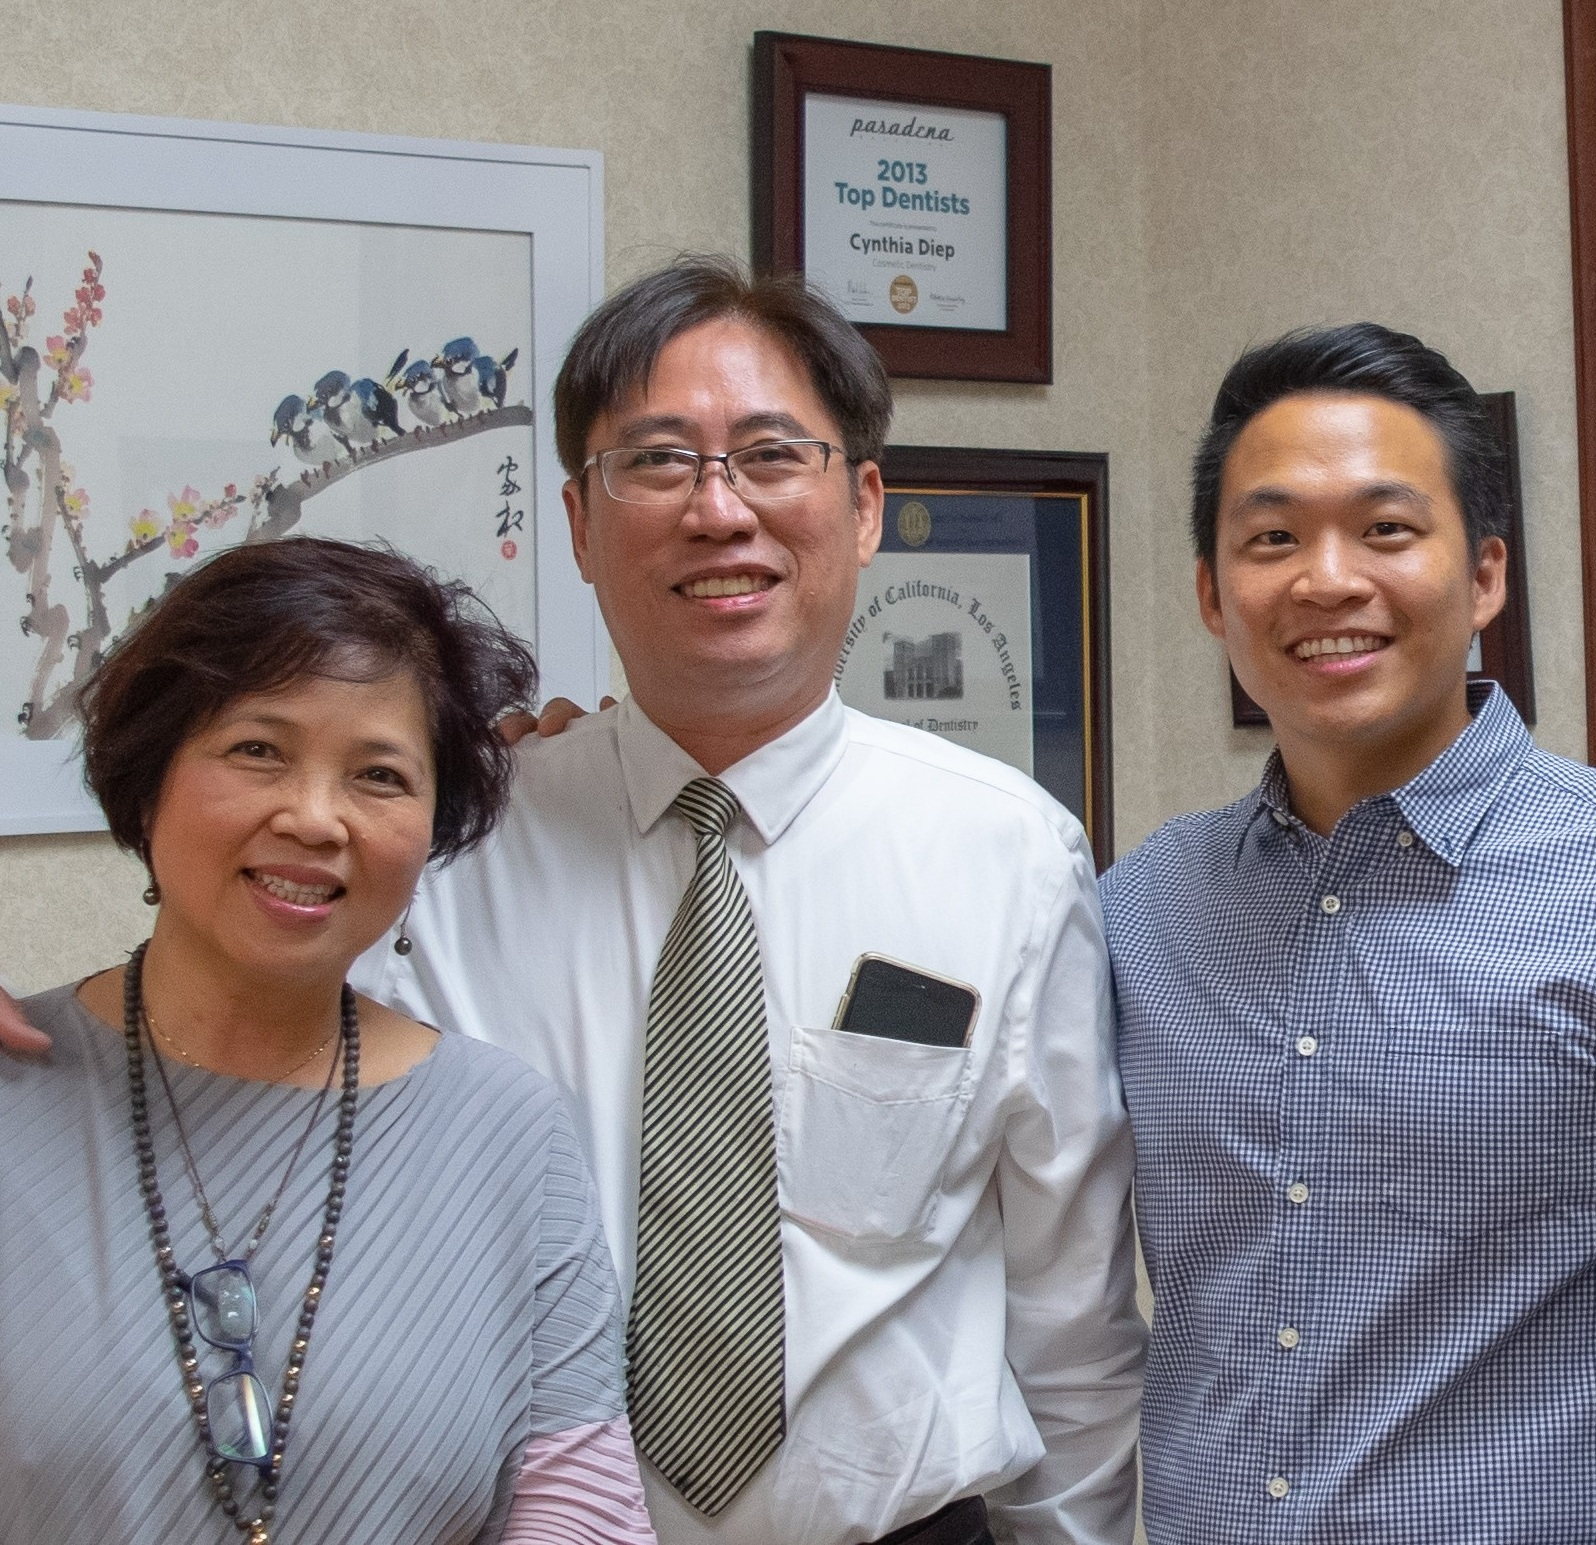 Our Office - San Marino Dentistry has a 40-plus year history of caring for the residents of San Marino. In October 2018, Dr. Jonathan Song bought the practice from retiring dentists, Dr. Cynthia Diep and Dr. Tin-Hoag Nguyen, and can't wait to continue the legacy of the doctors who have served the community in the same location.